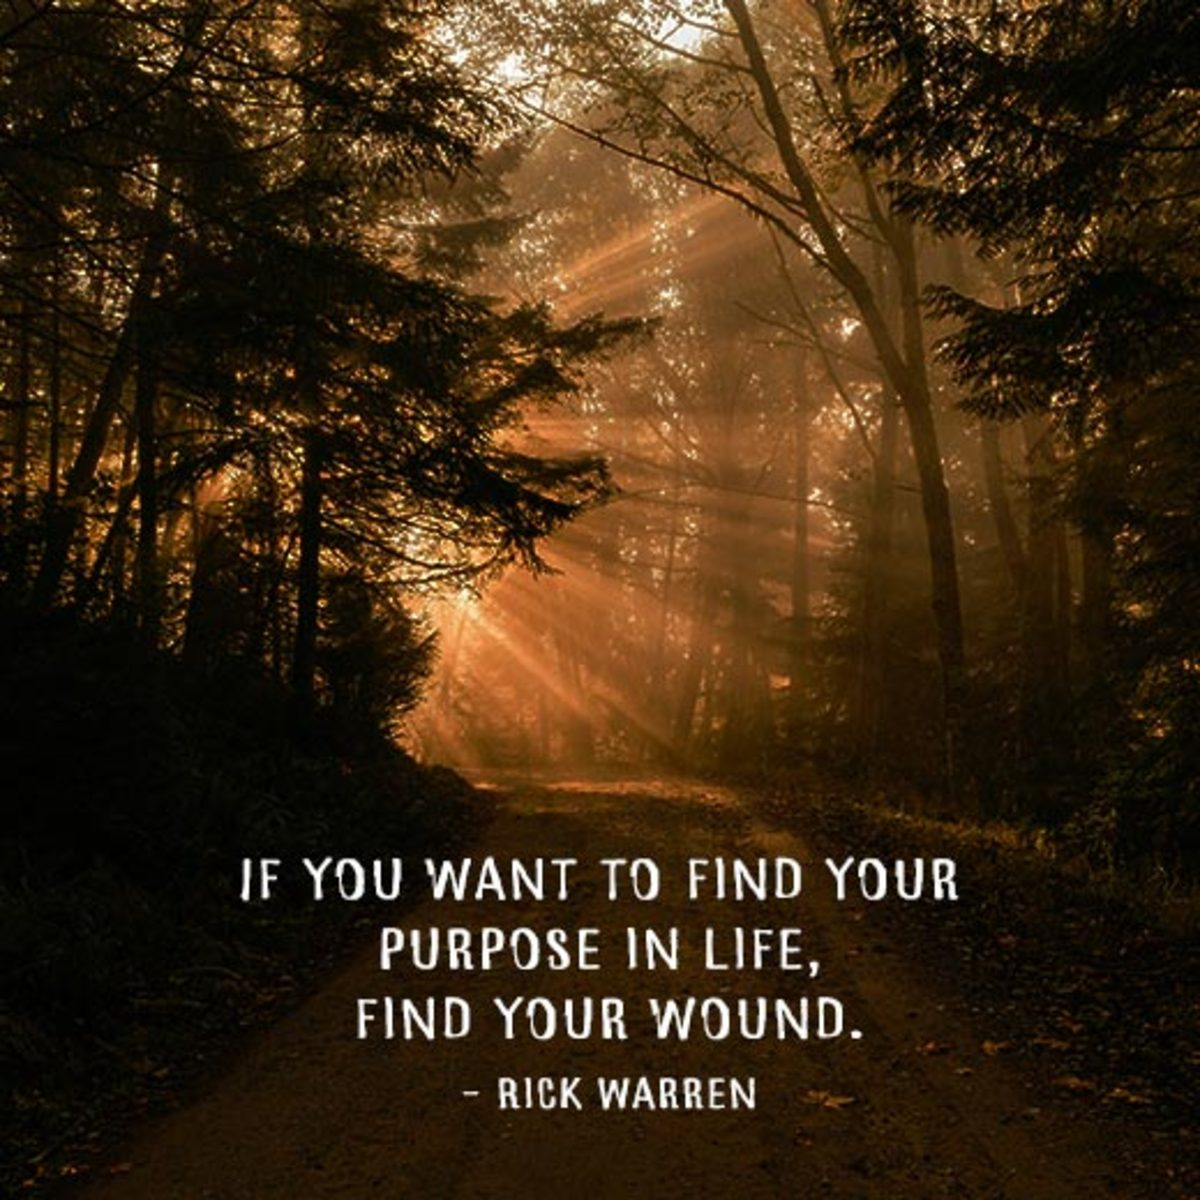 """""""If you want to find your purpose in life, find your wound."""" - Rick Warren"""